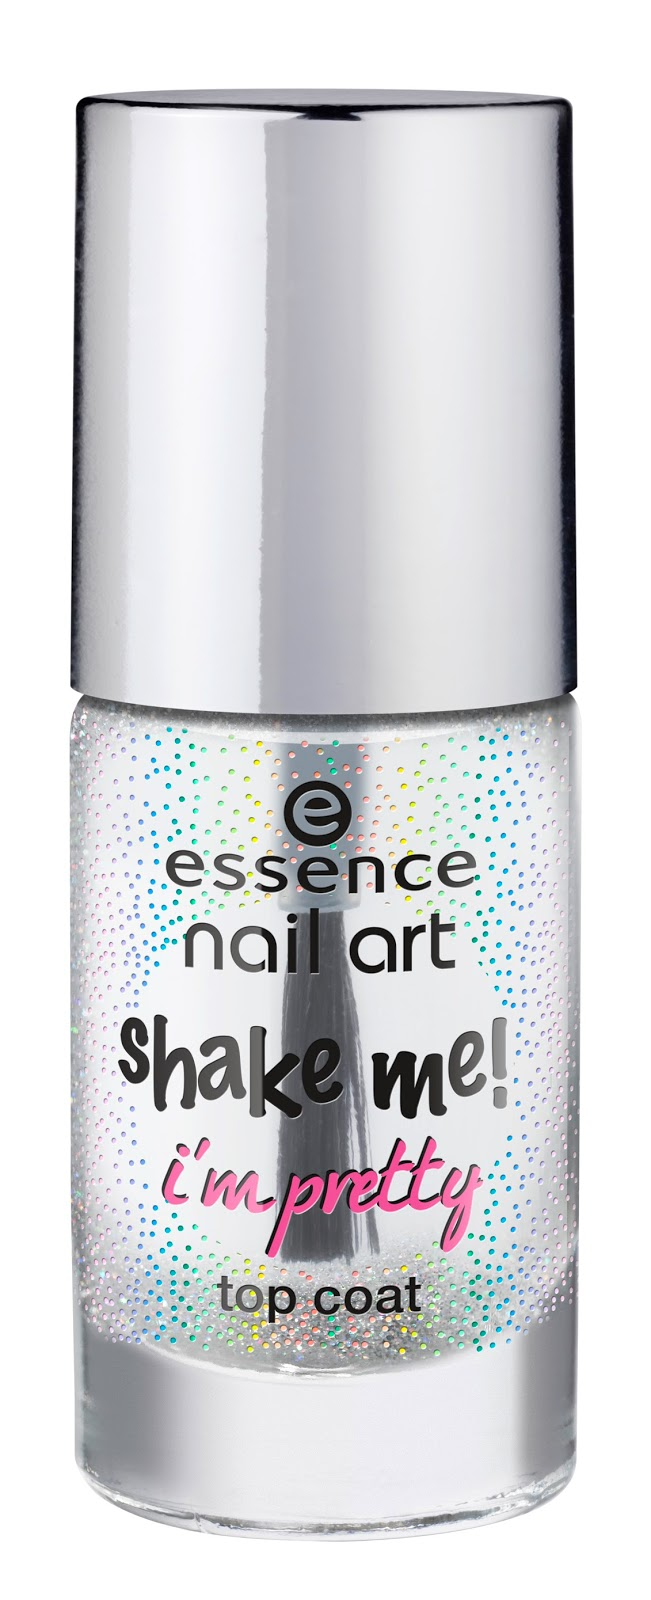 Essence nail art shake me! I'm pretty top coat